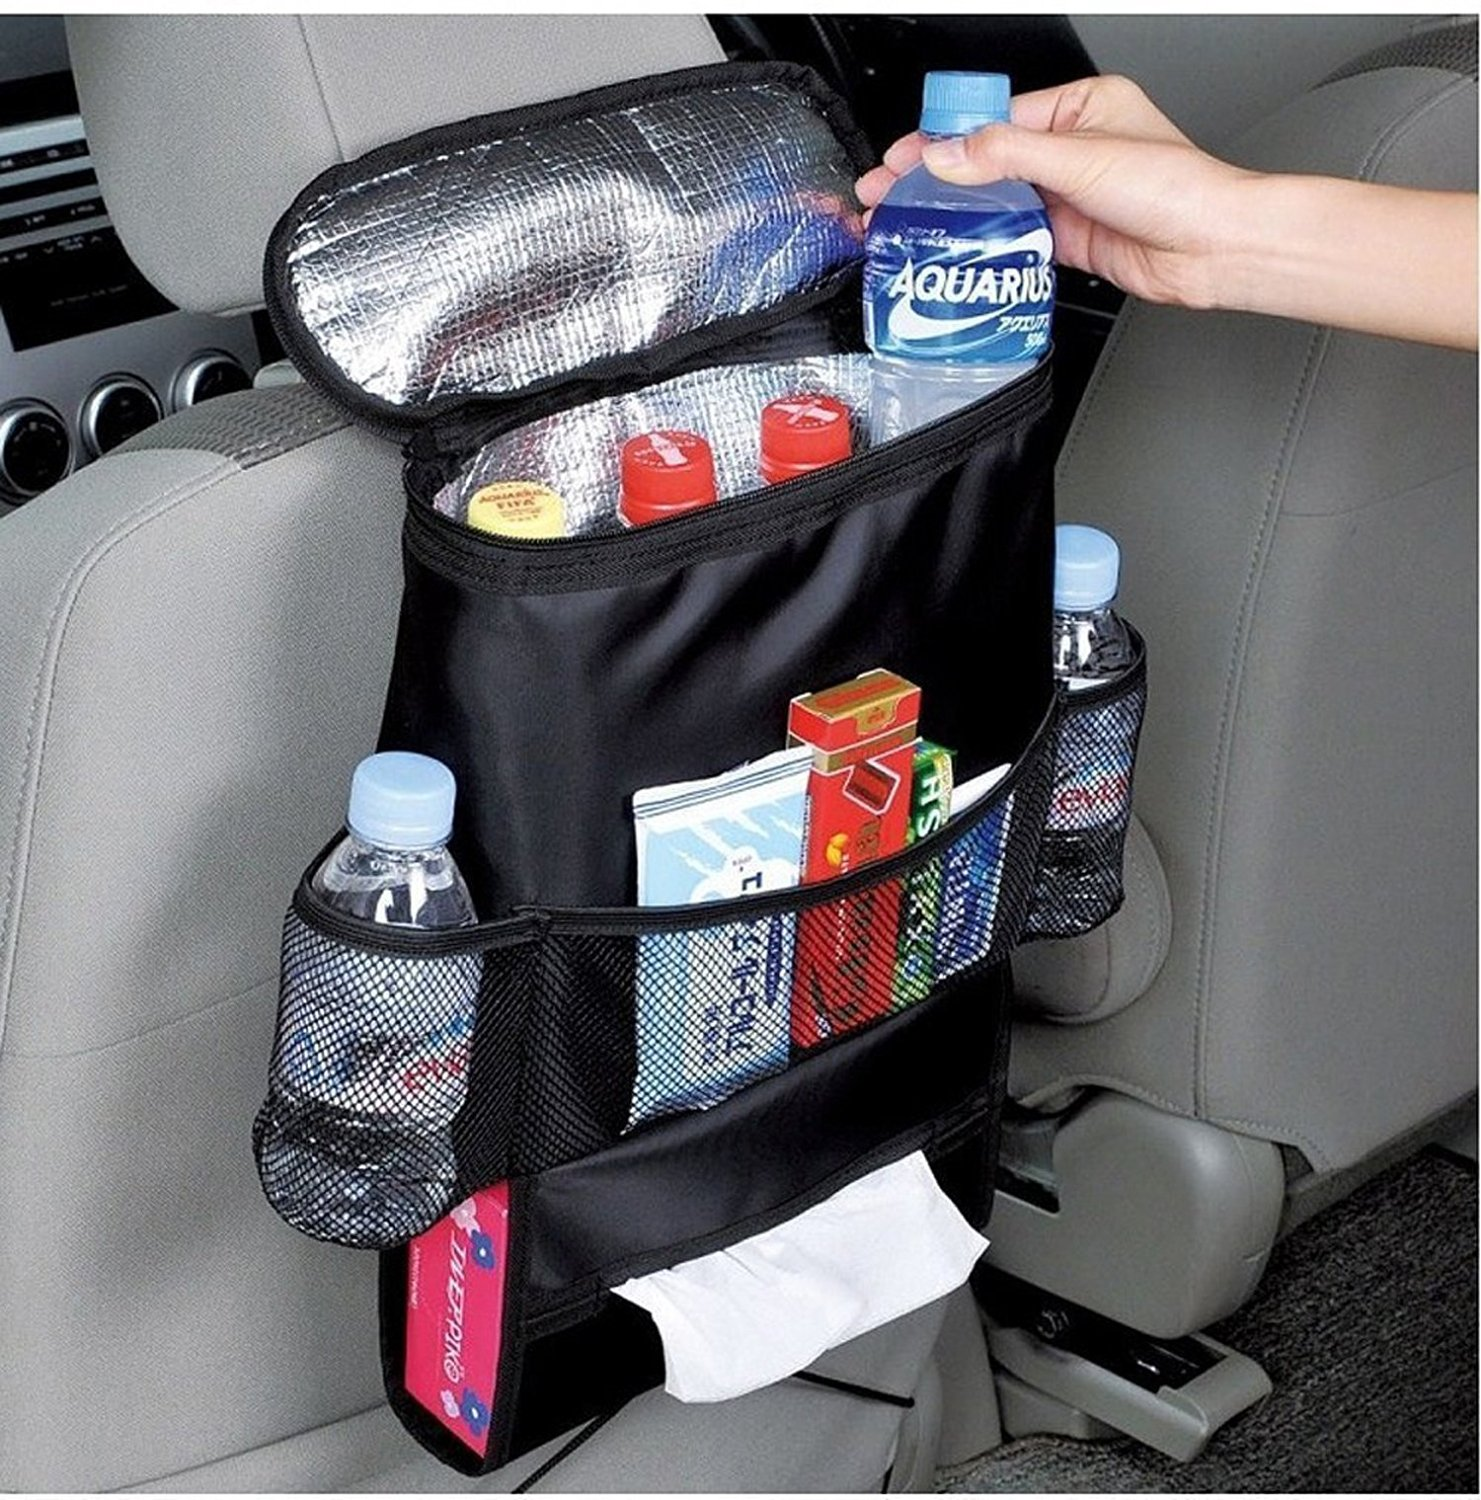 10 Best Back Seat Car Organizers Reviewed in 2020 | DrivrZone.com